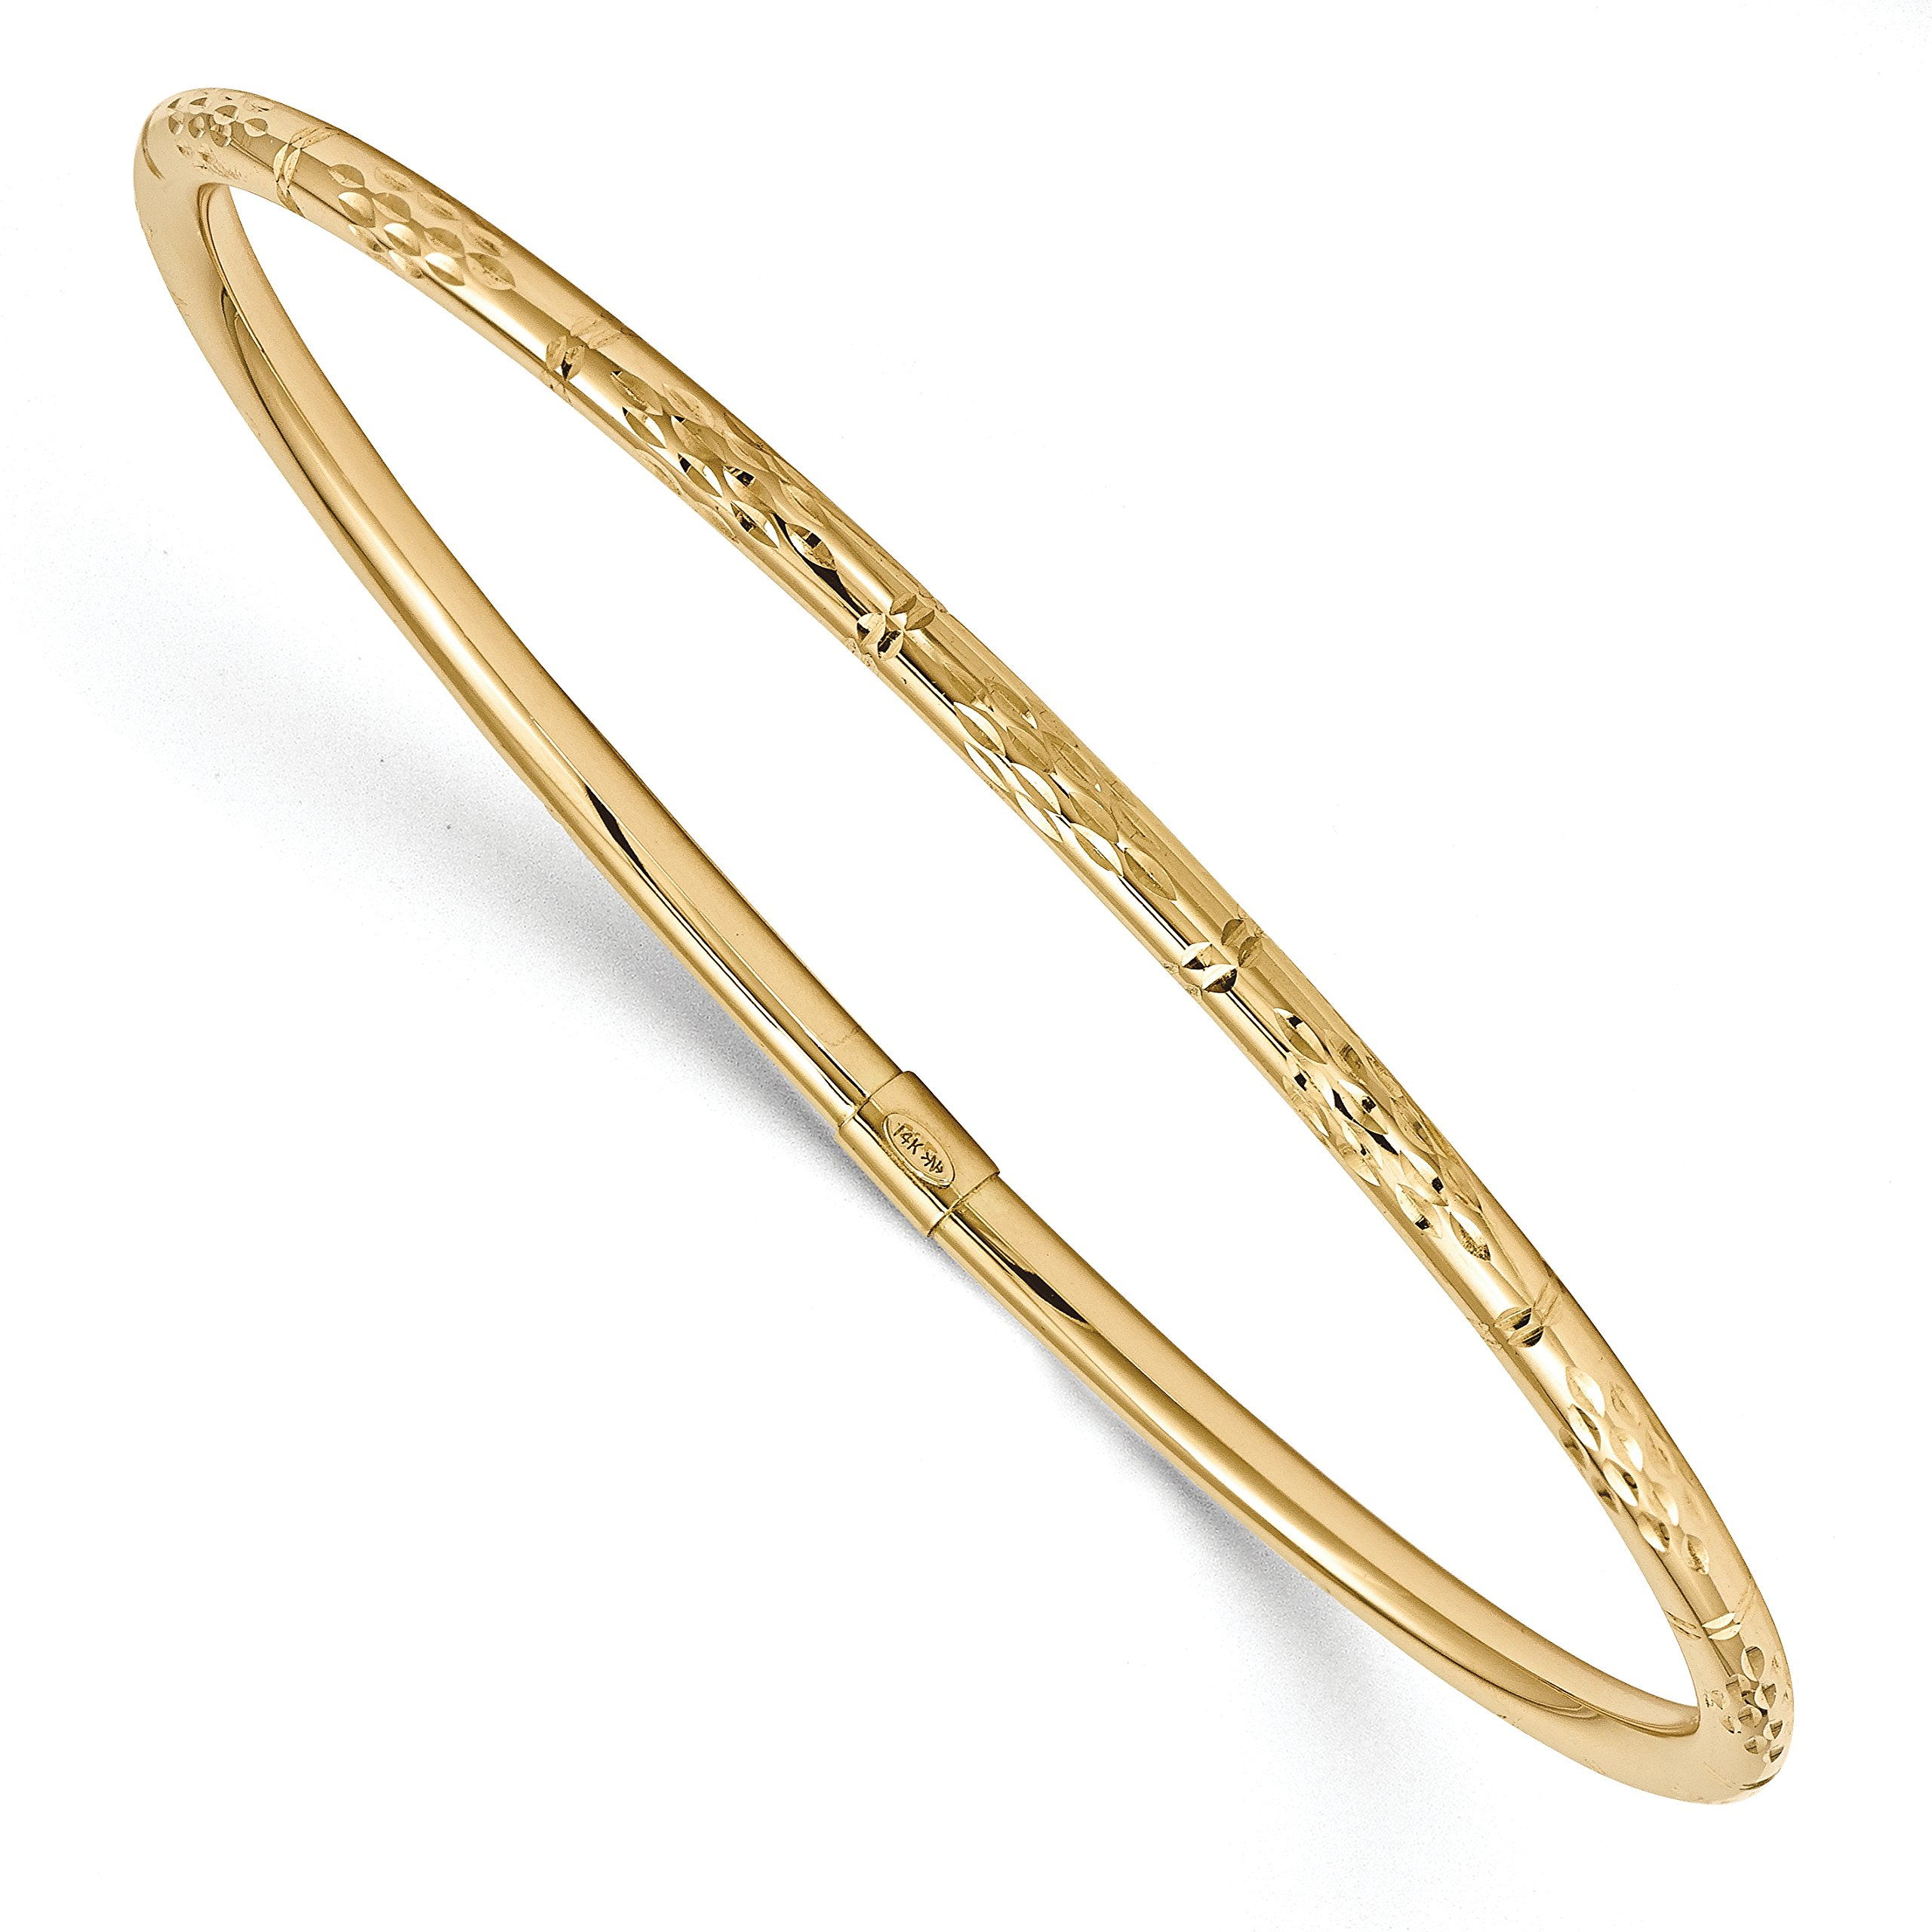 ICE CARATS 14k Yellow Gold Slip On Bangle Bracelet Cuff Expandable Stackable Fine Jewelry Gift Set For Women Heart